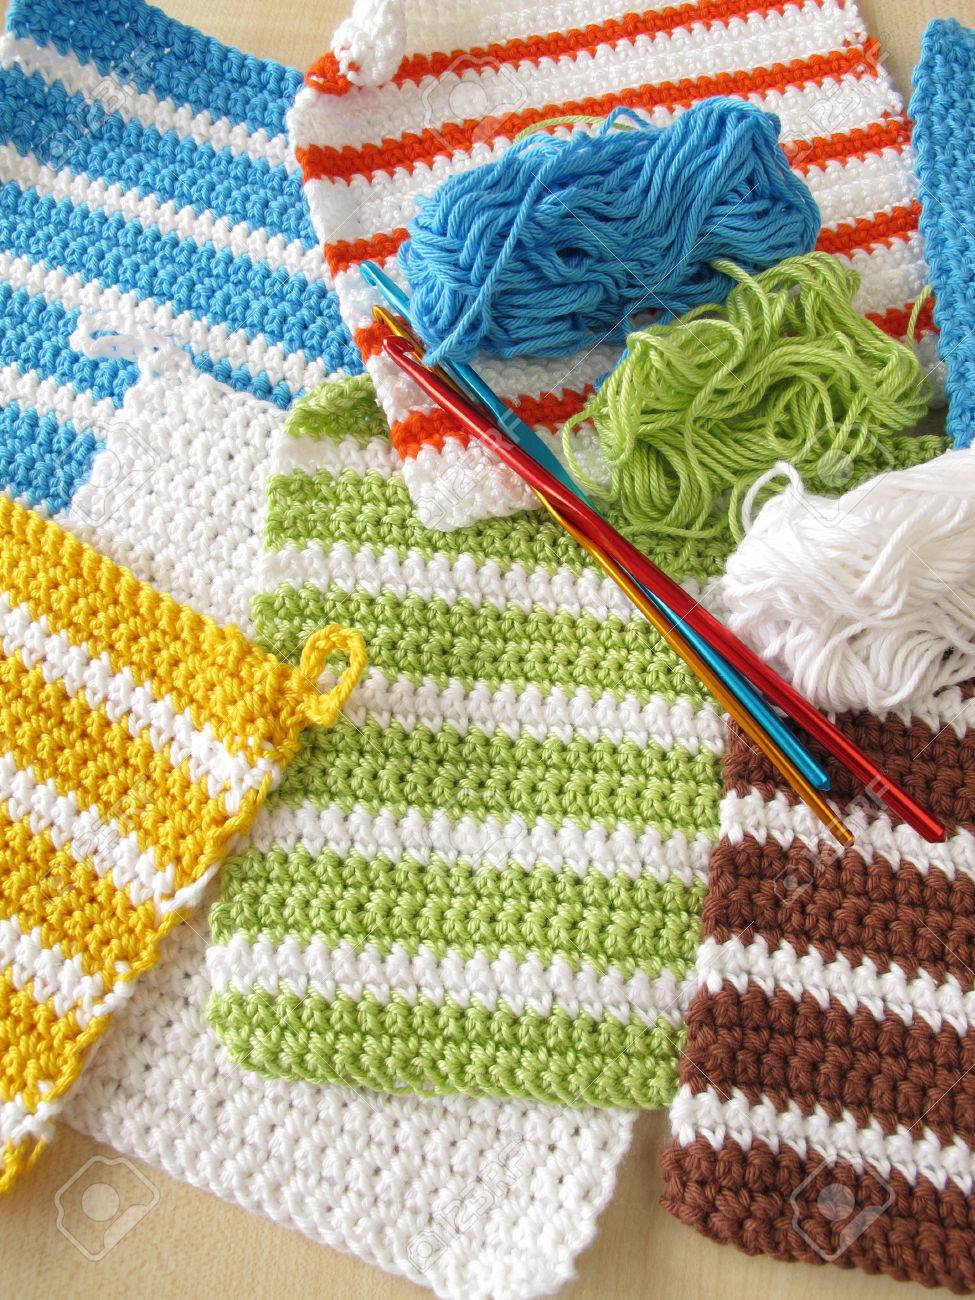 Crochet Pot Holders Stock Photo, Picture And Royalty Free Image ...